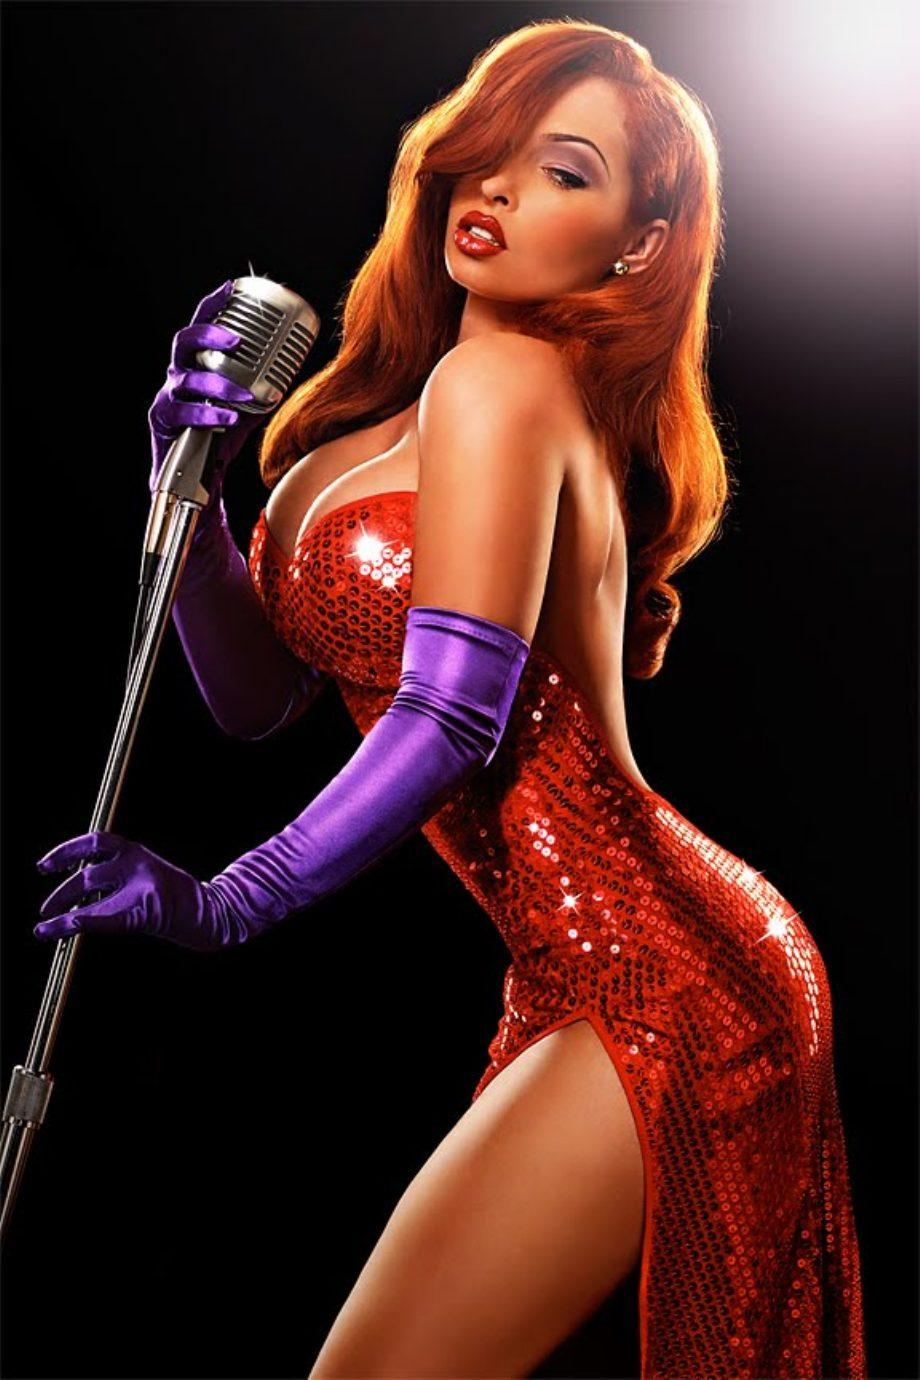 http://www.iluvtoons.com/media/images/2/jessica-rabbit-xxx-pictures/jessica-rabbit-xxx-pictures-38867.jpg